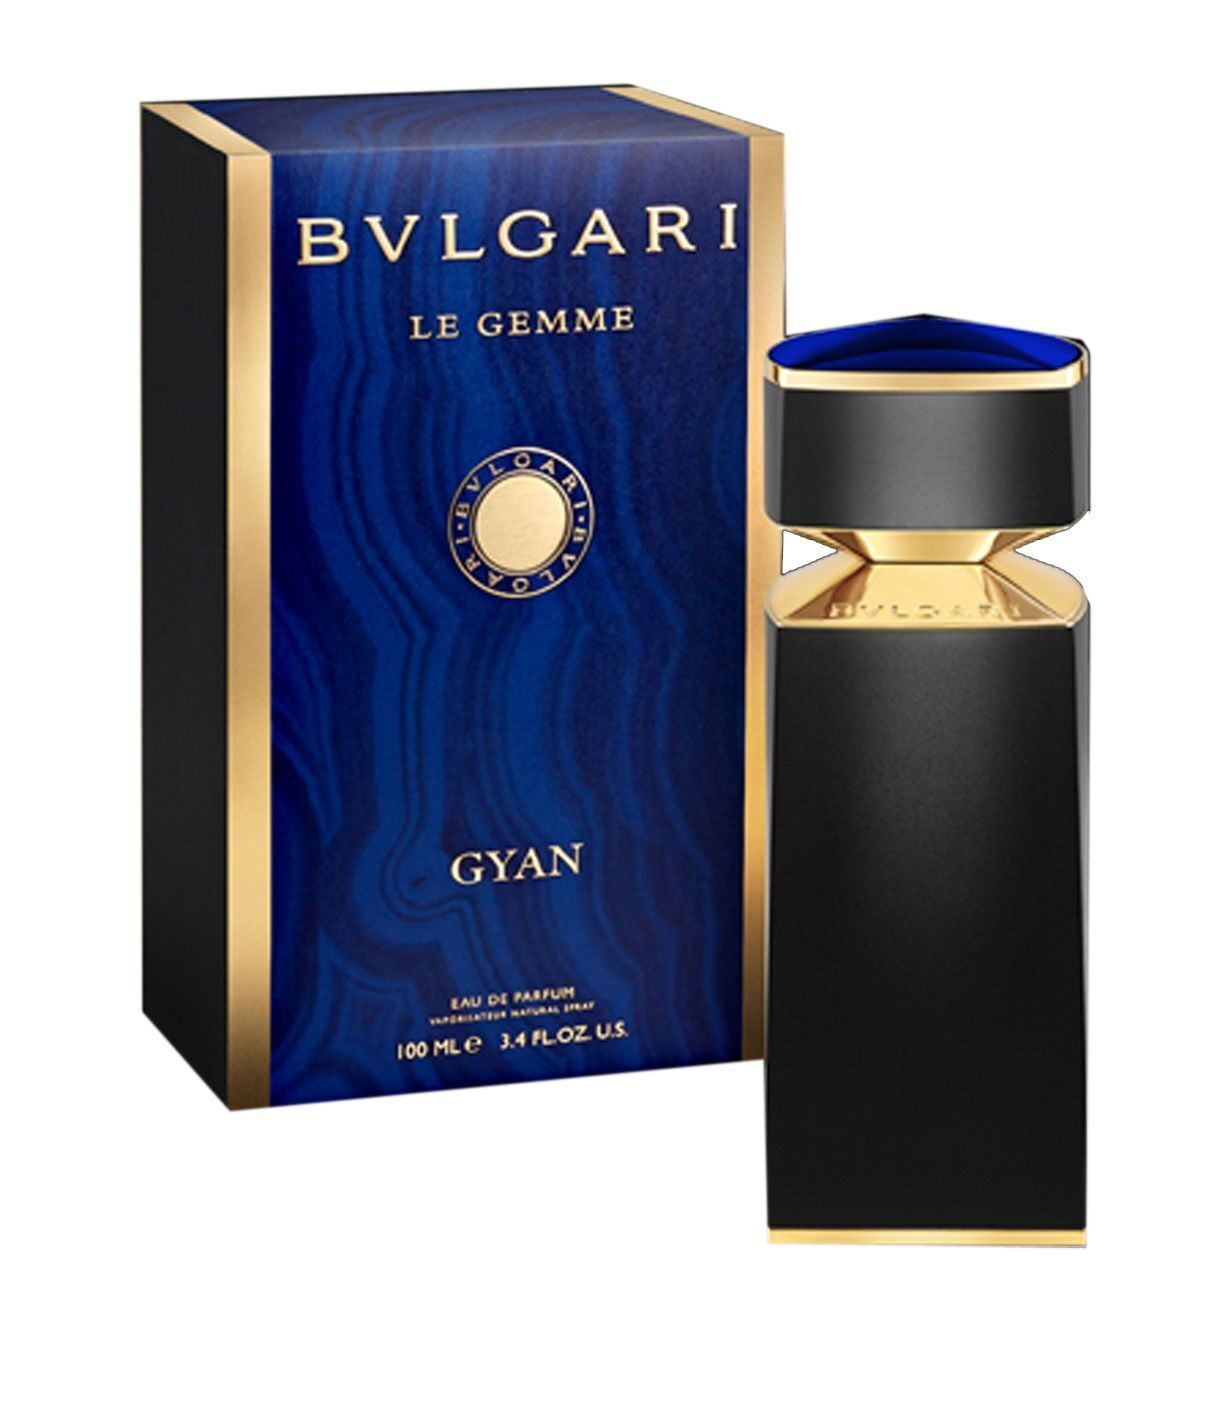 Bvlgari Gyan 100ml